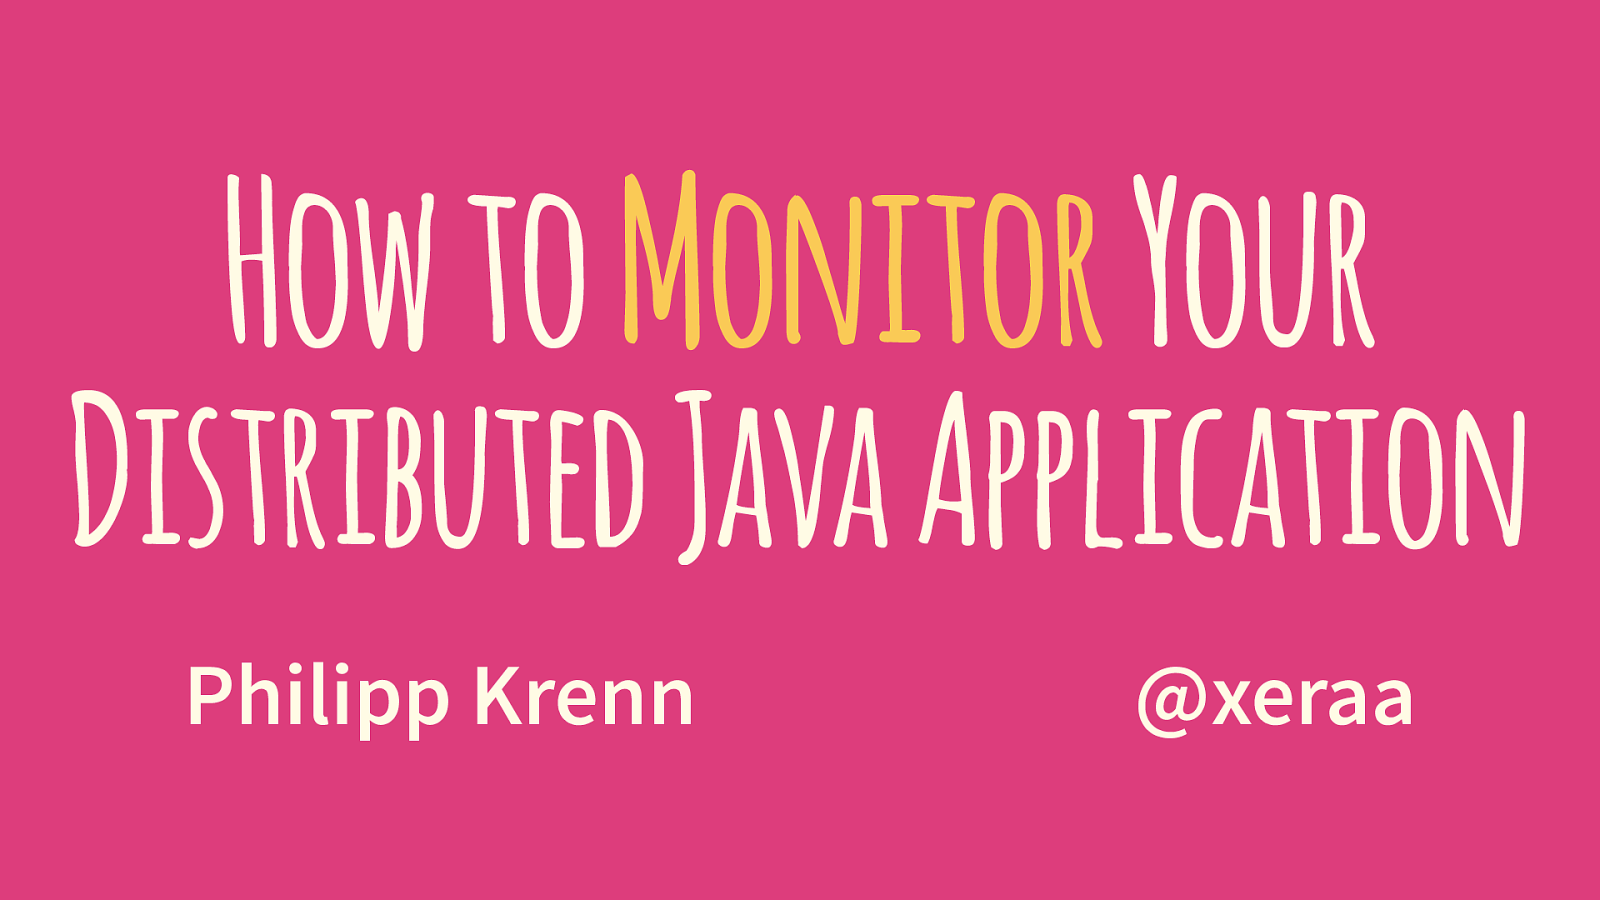 How to Monitor Your Distributed Java Application